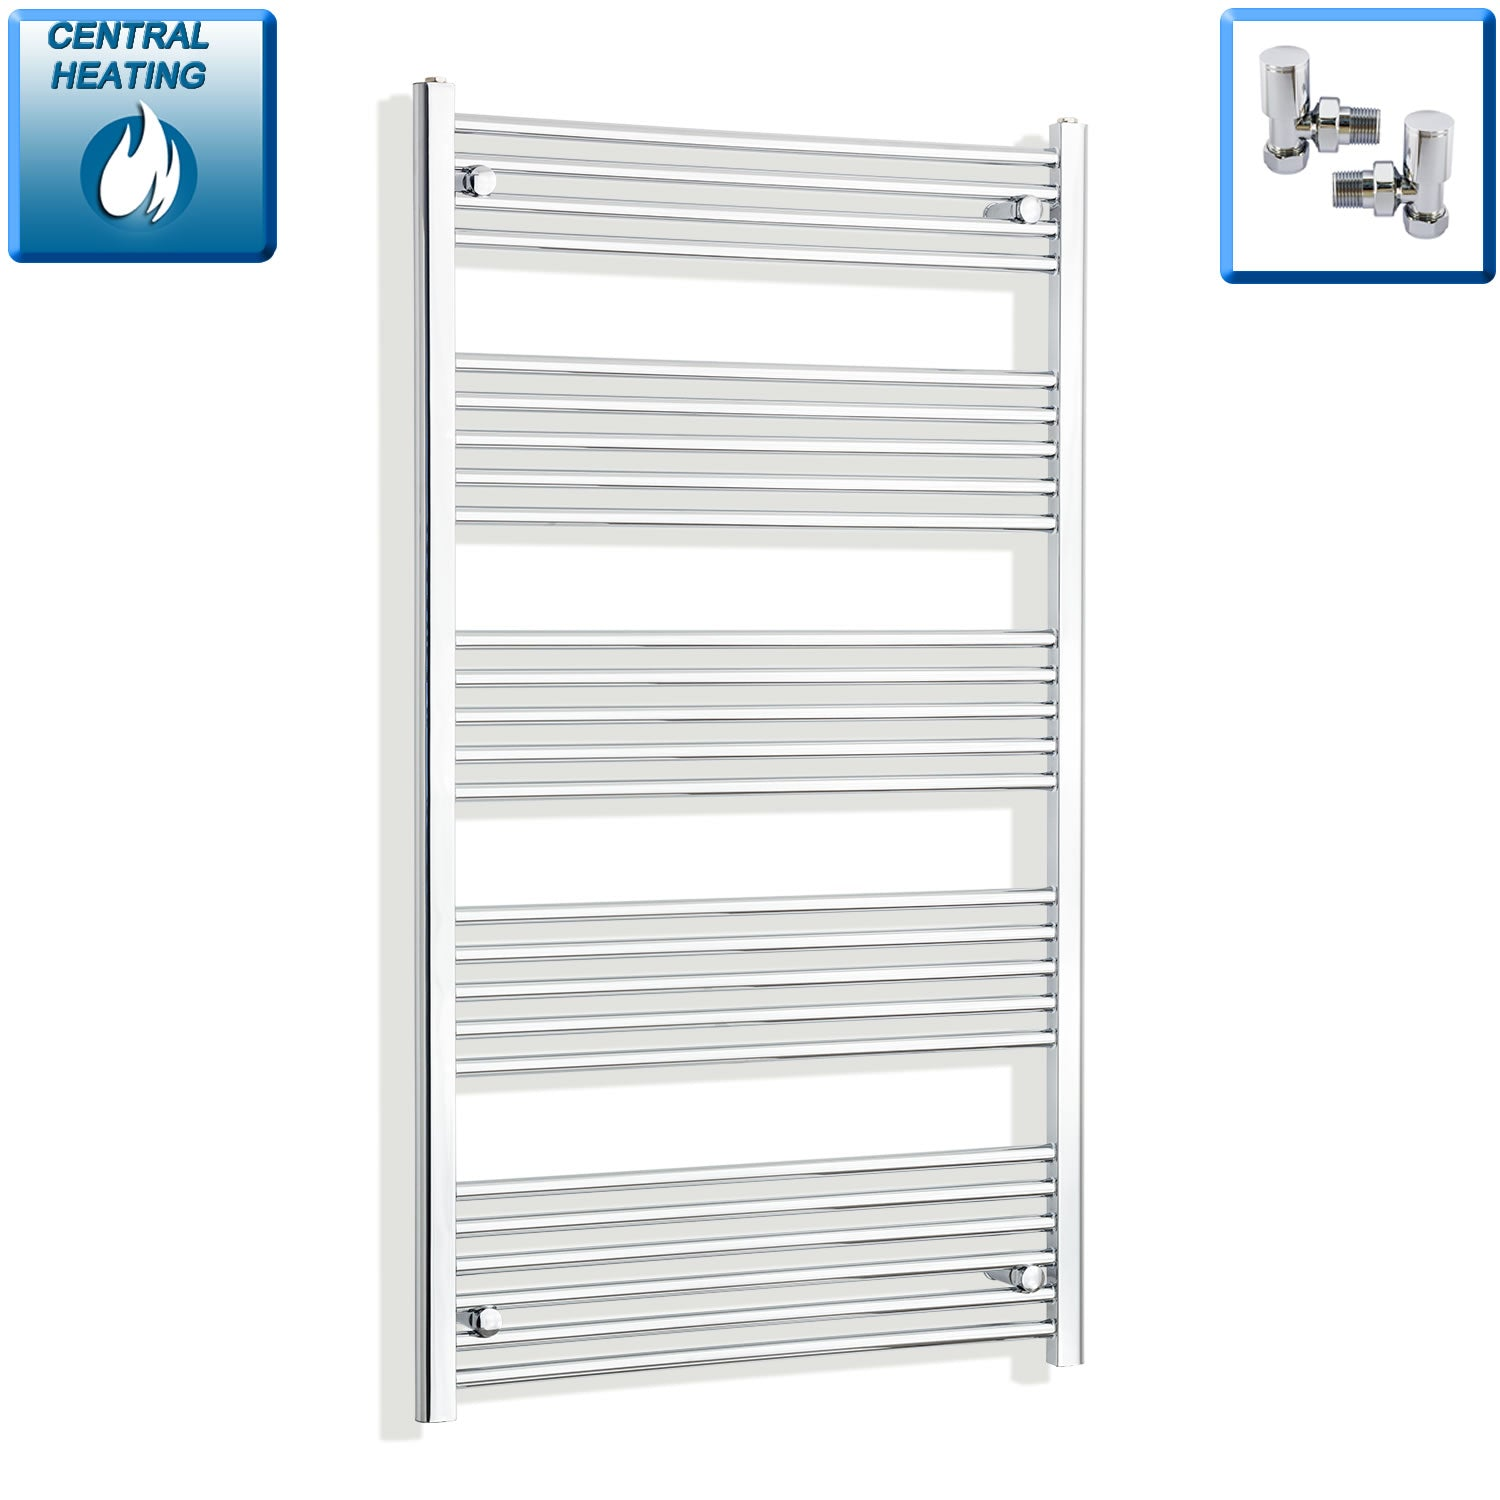 750mm Wide 1400mm High Chrome Towel Rail Radiator With Angled Valve